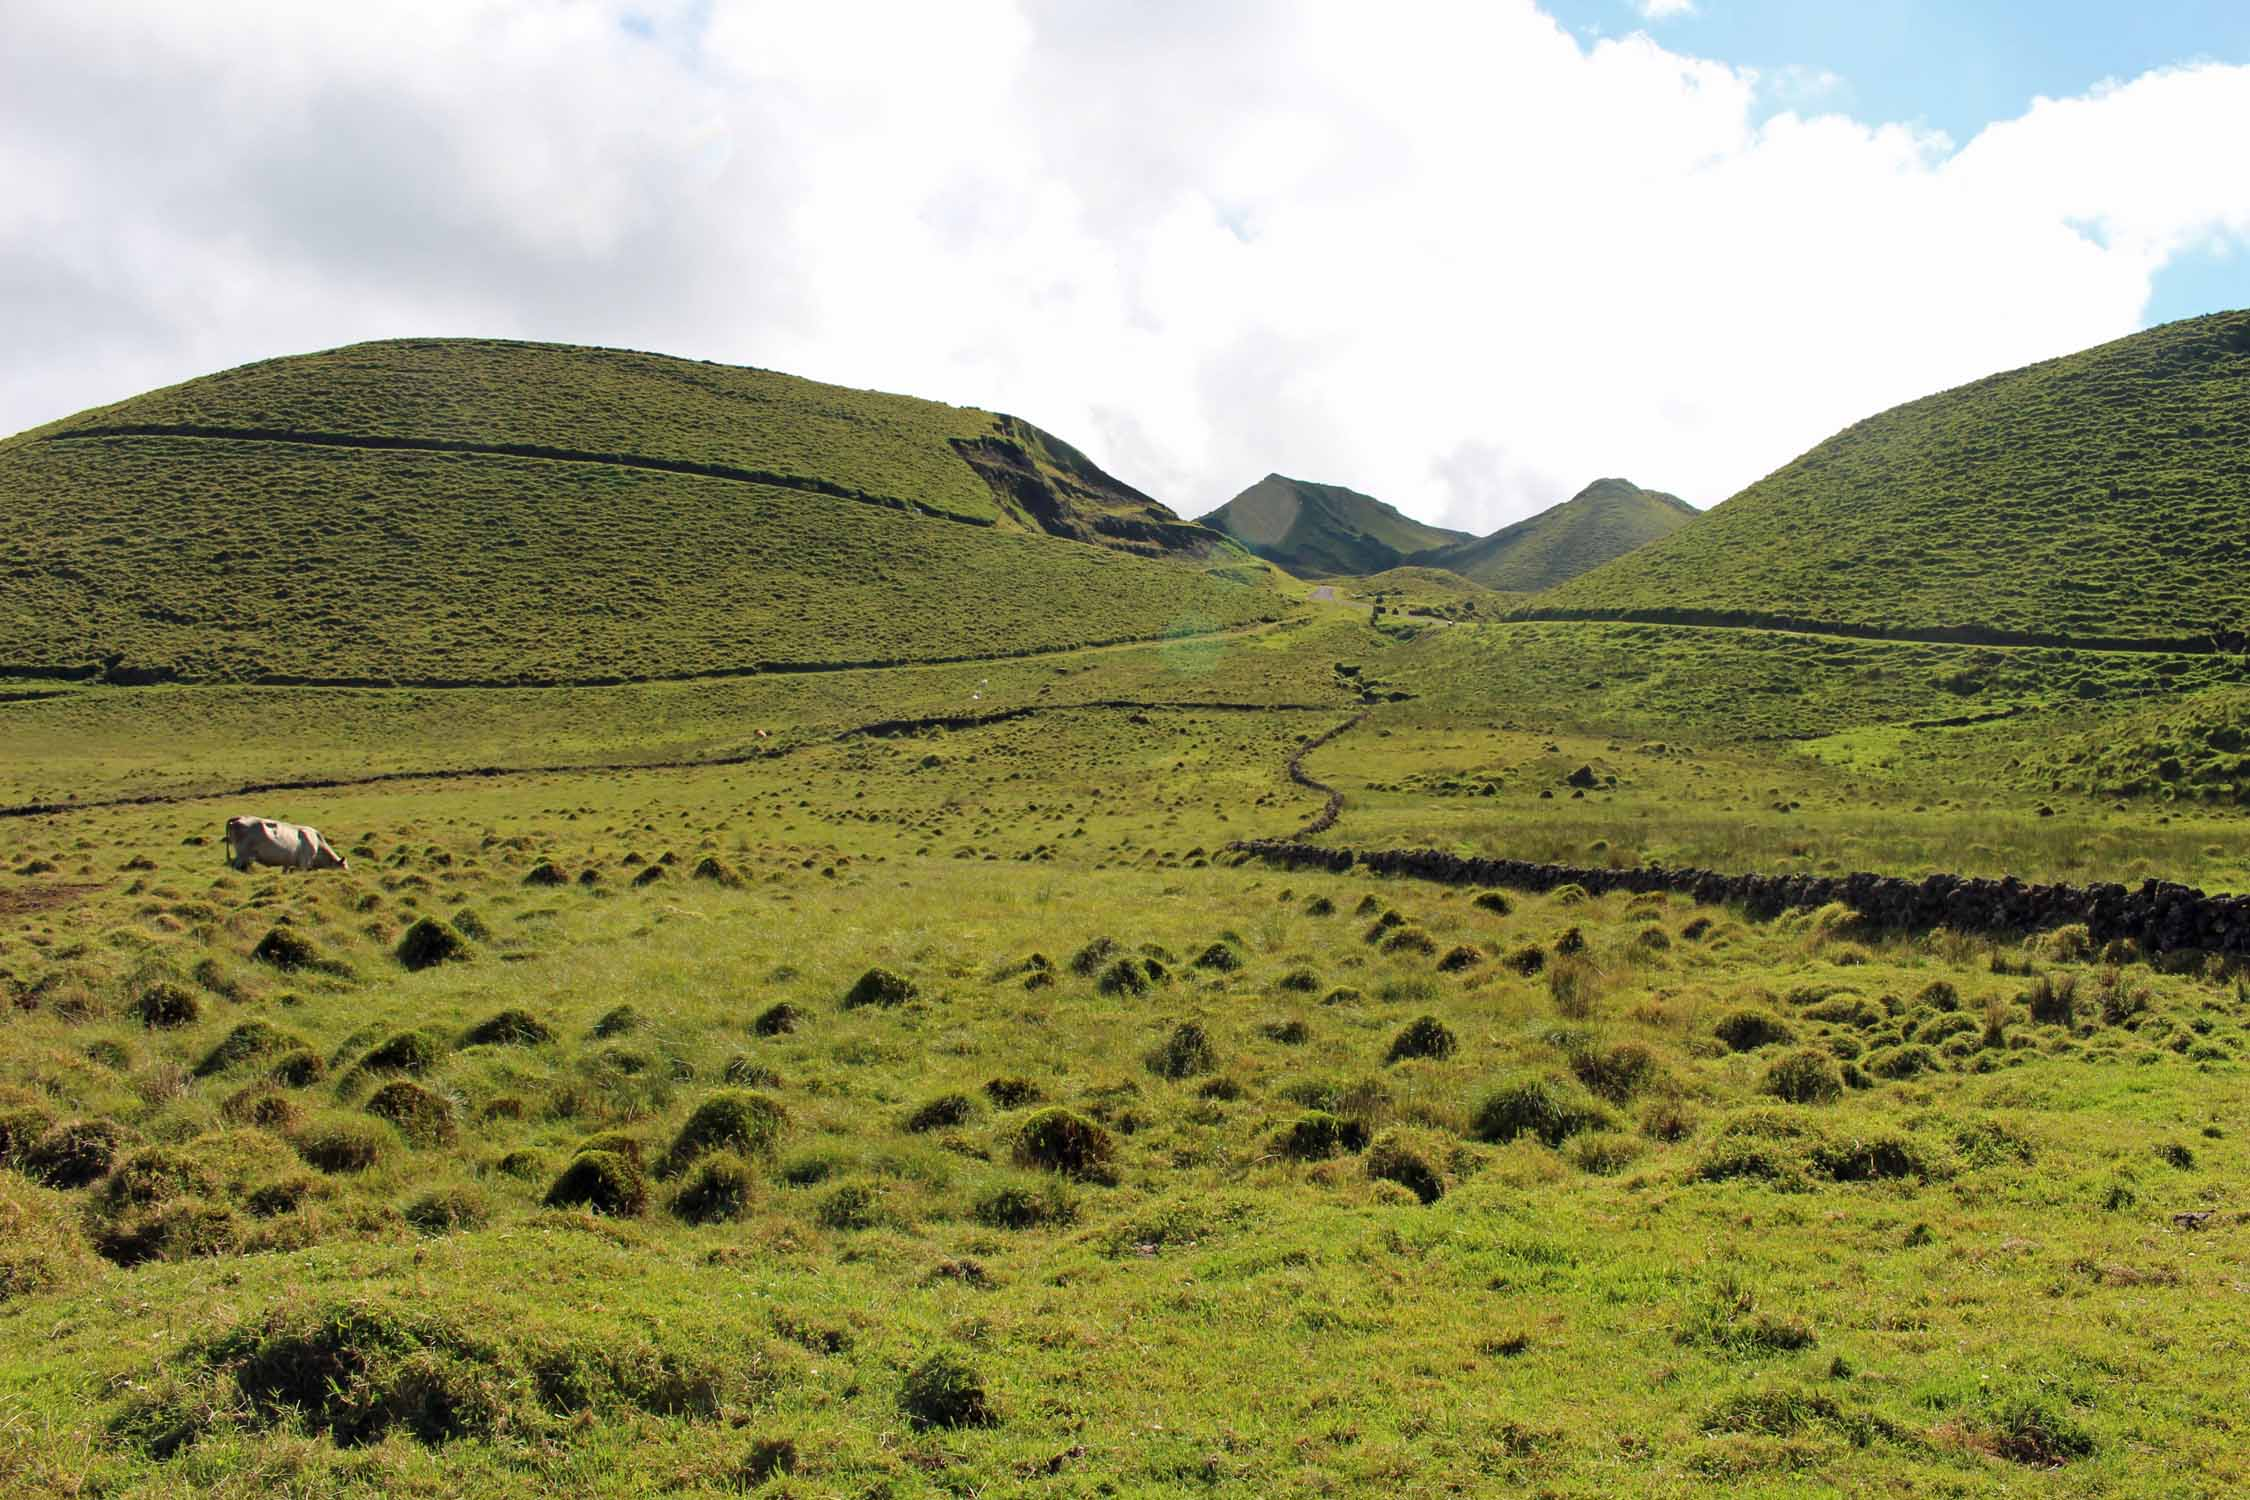 Landscape of the mountain in Pico Island, Azores